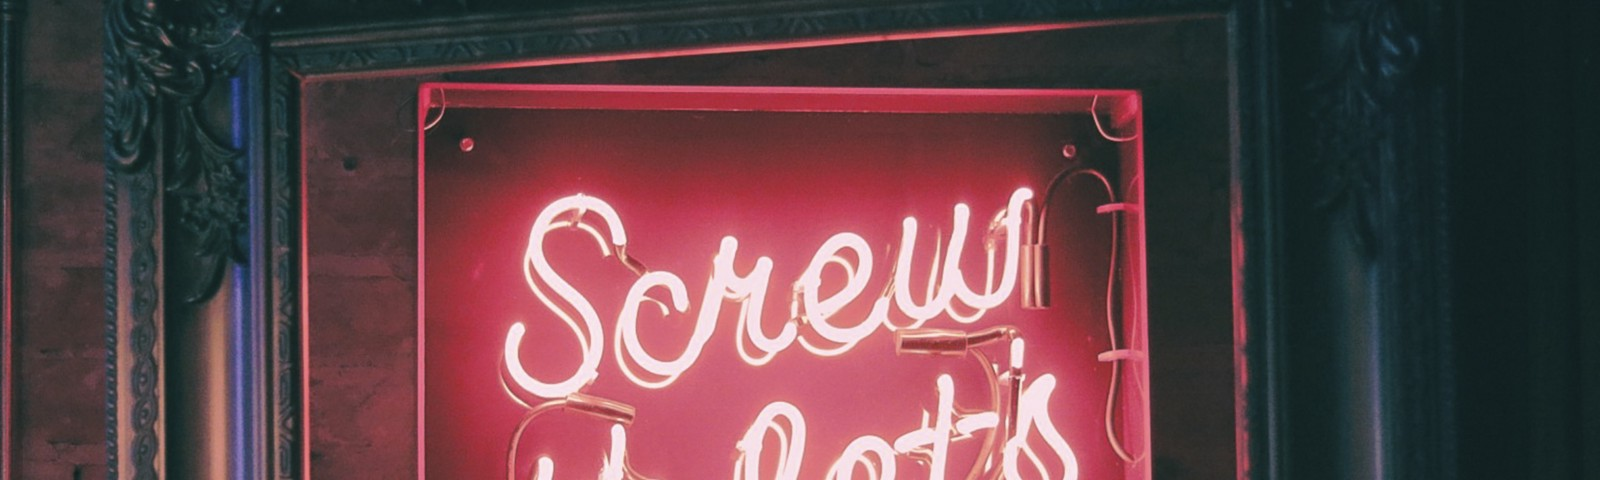 "Neon sign with the words ""Screw it, let's do it"" emblazoned in red."